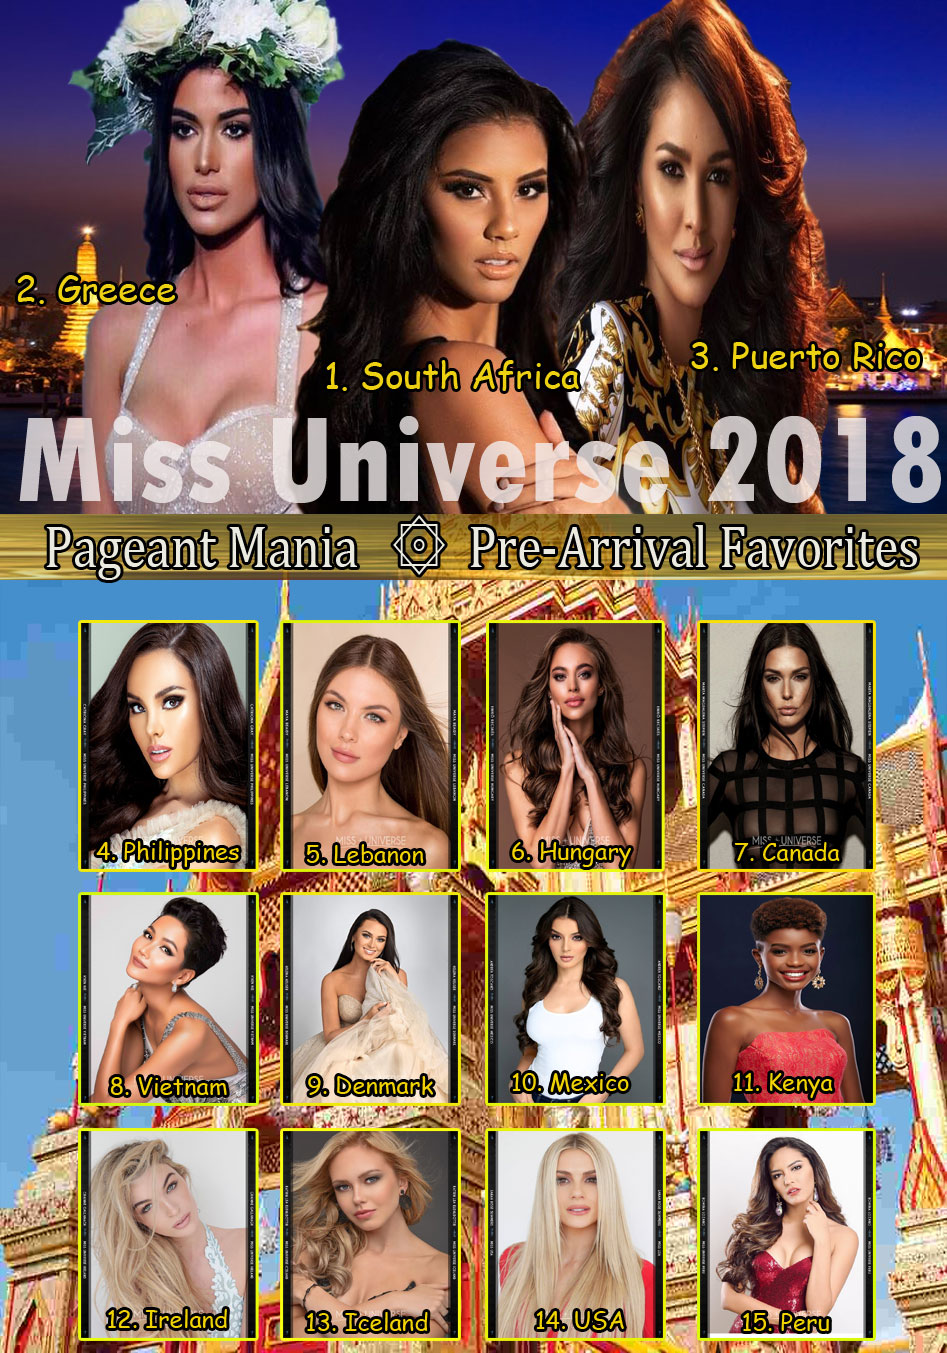 PAGEANT MANIA - MISS UNIVERSE 2018 * POST - ARRIVAL HOT PICKS* - Page 3 Pm11